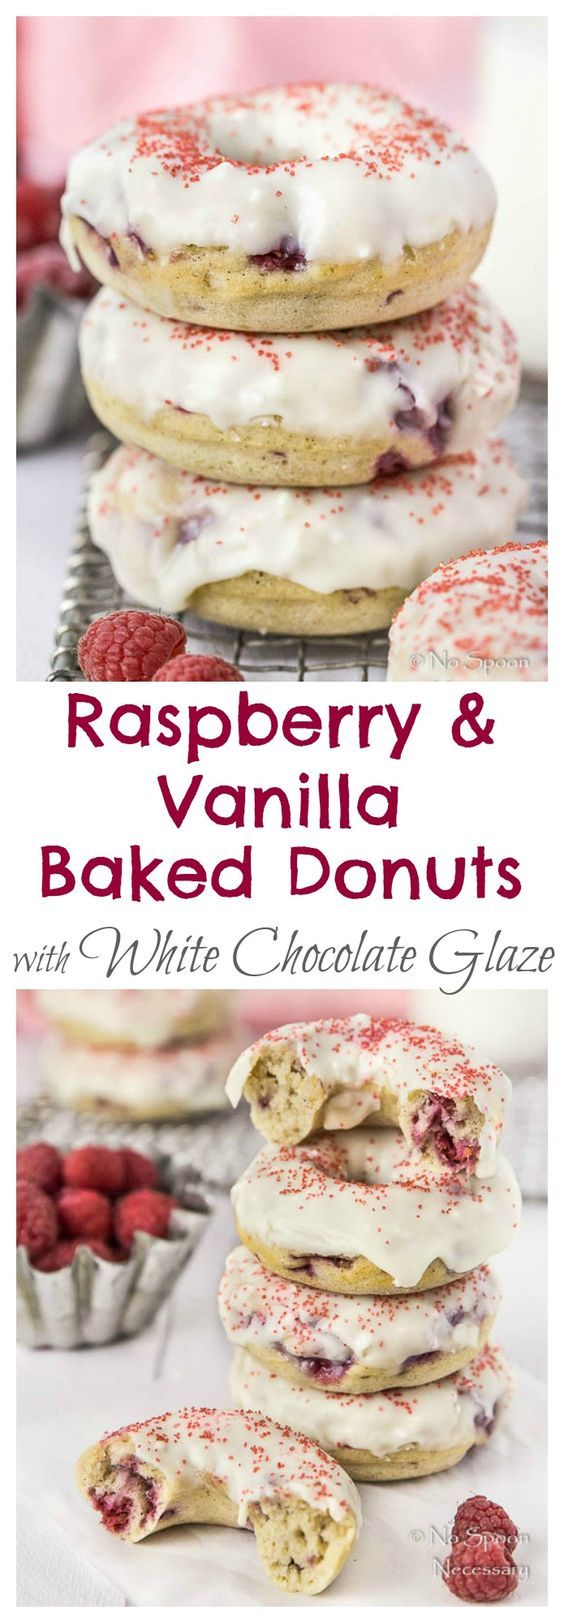 1000+ images about Doughnuts on Pinterest